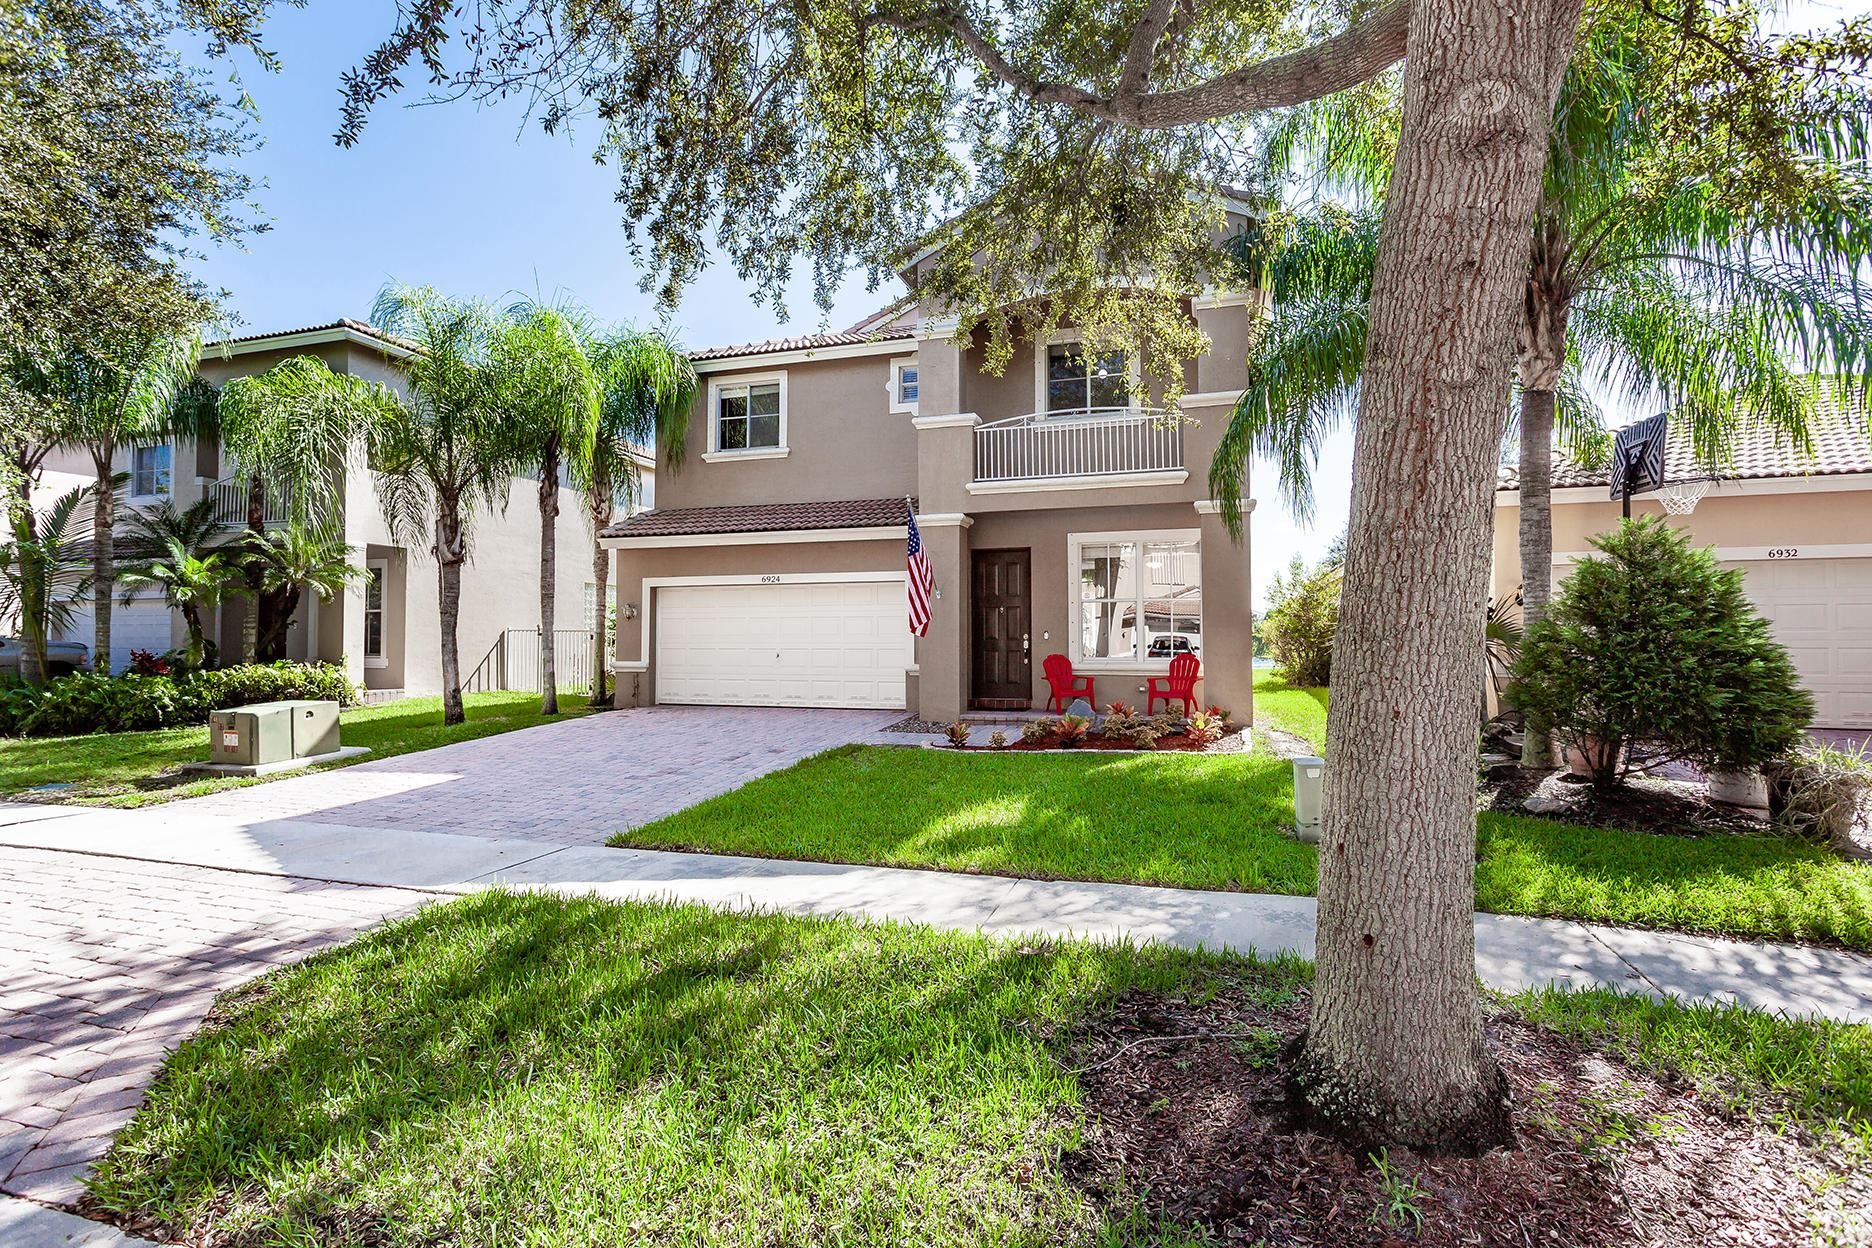 Photo of 6924 Bruce Court, Lake Worth, FL 33463 (MLS # RX-10579961)